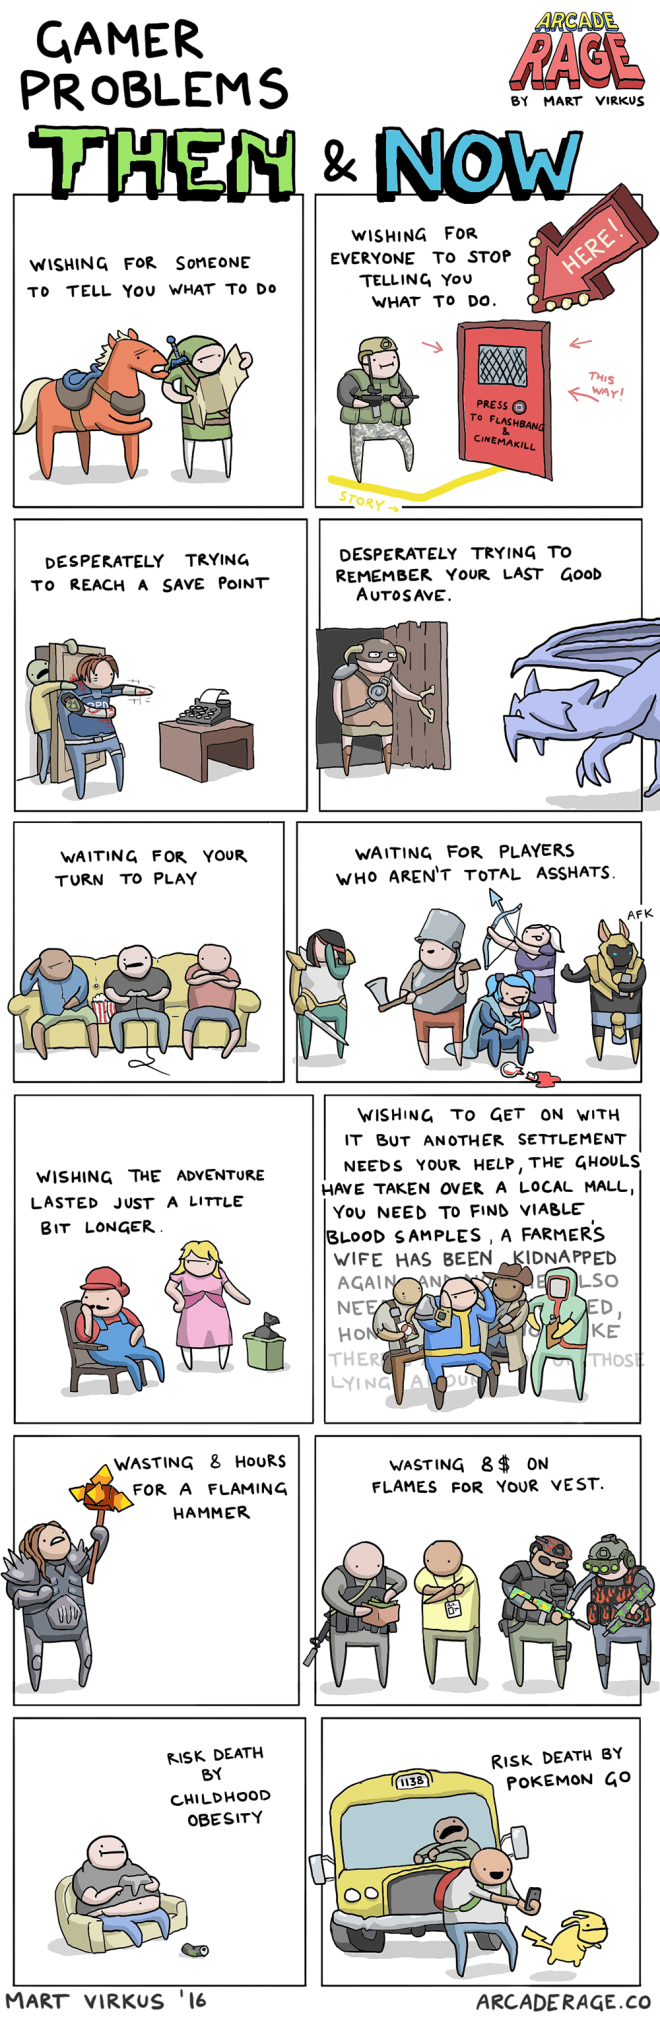 Gamer Problems: Then & Now